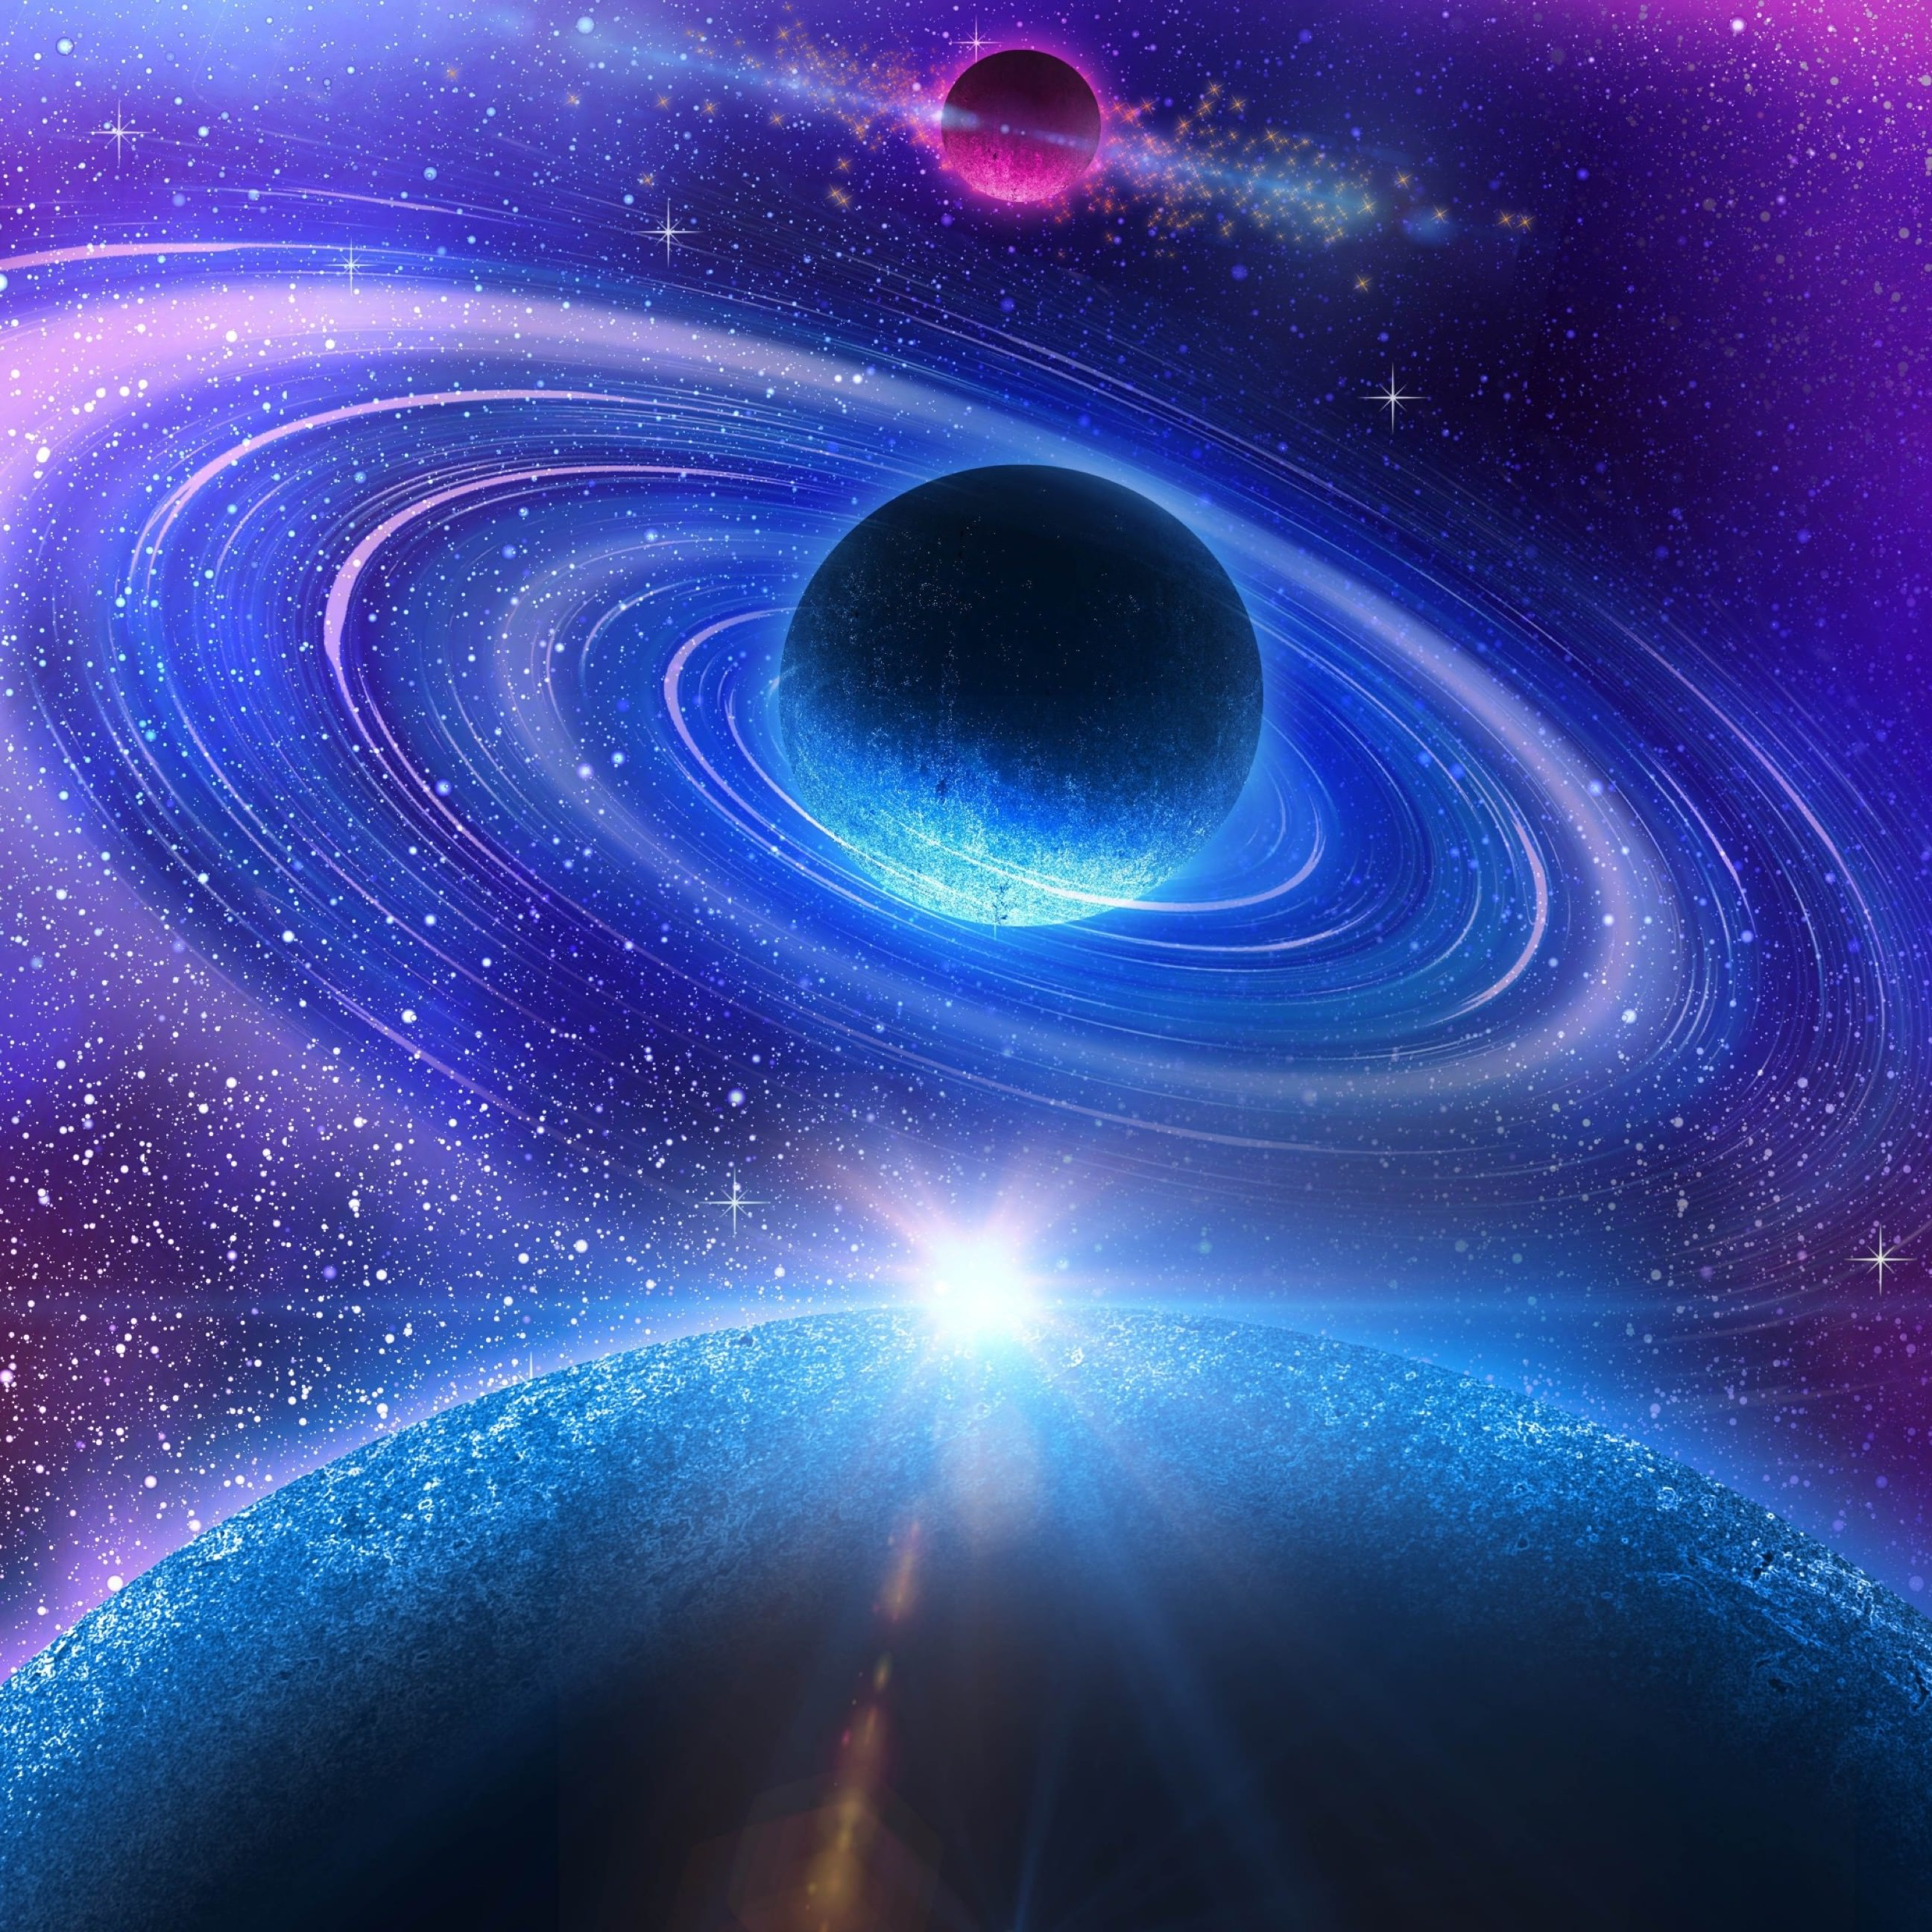 colorful 3d wallpaper planets - photo #18